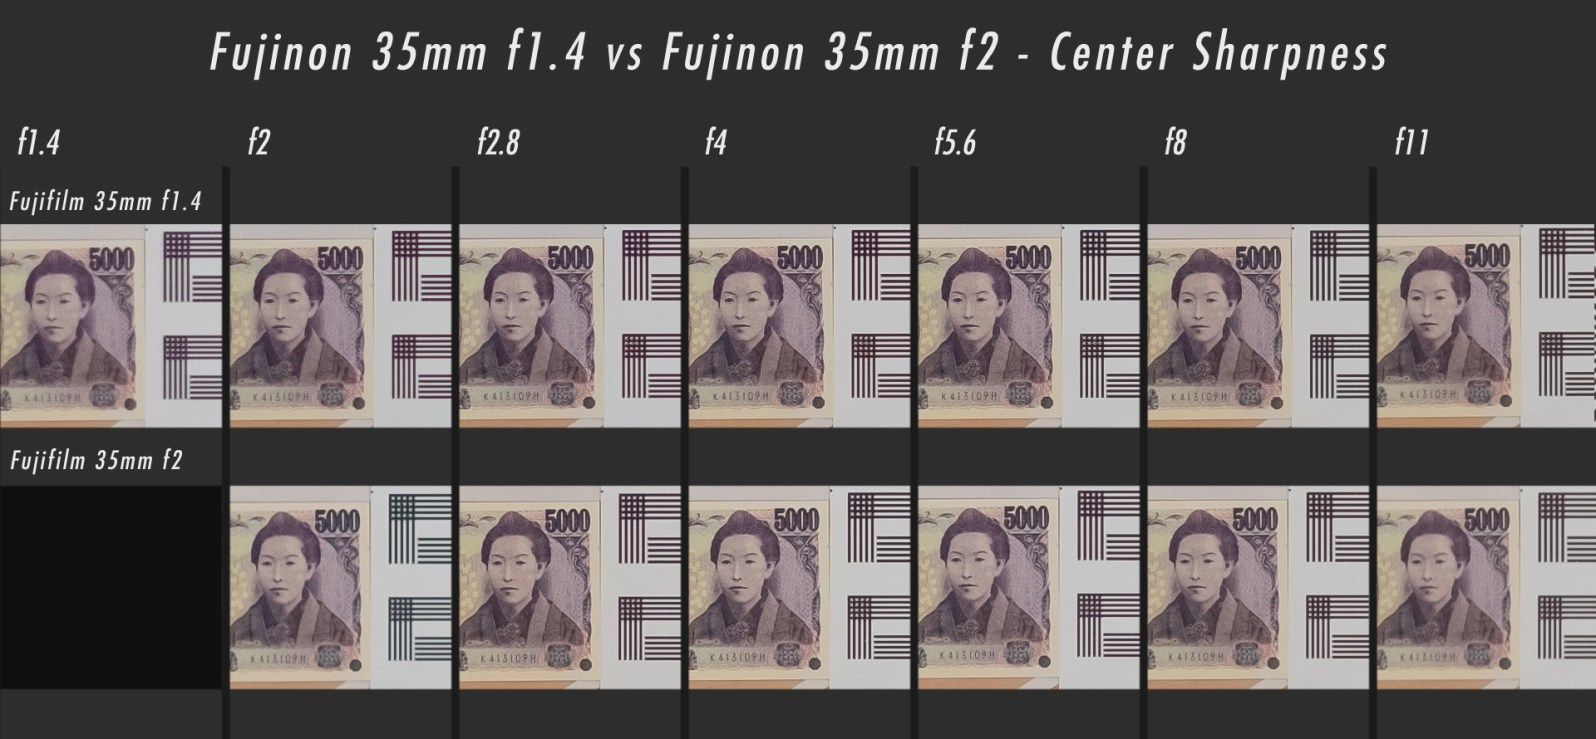 35mm f1.4 vs 35mm f2 Sharpness Comparison